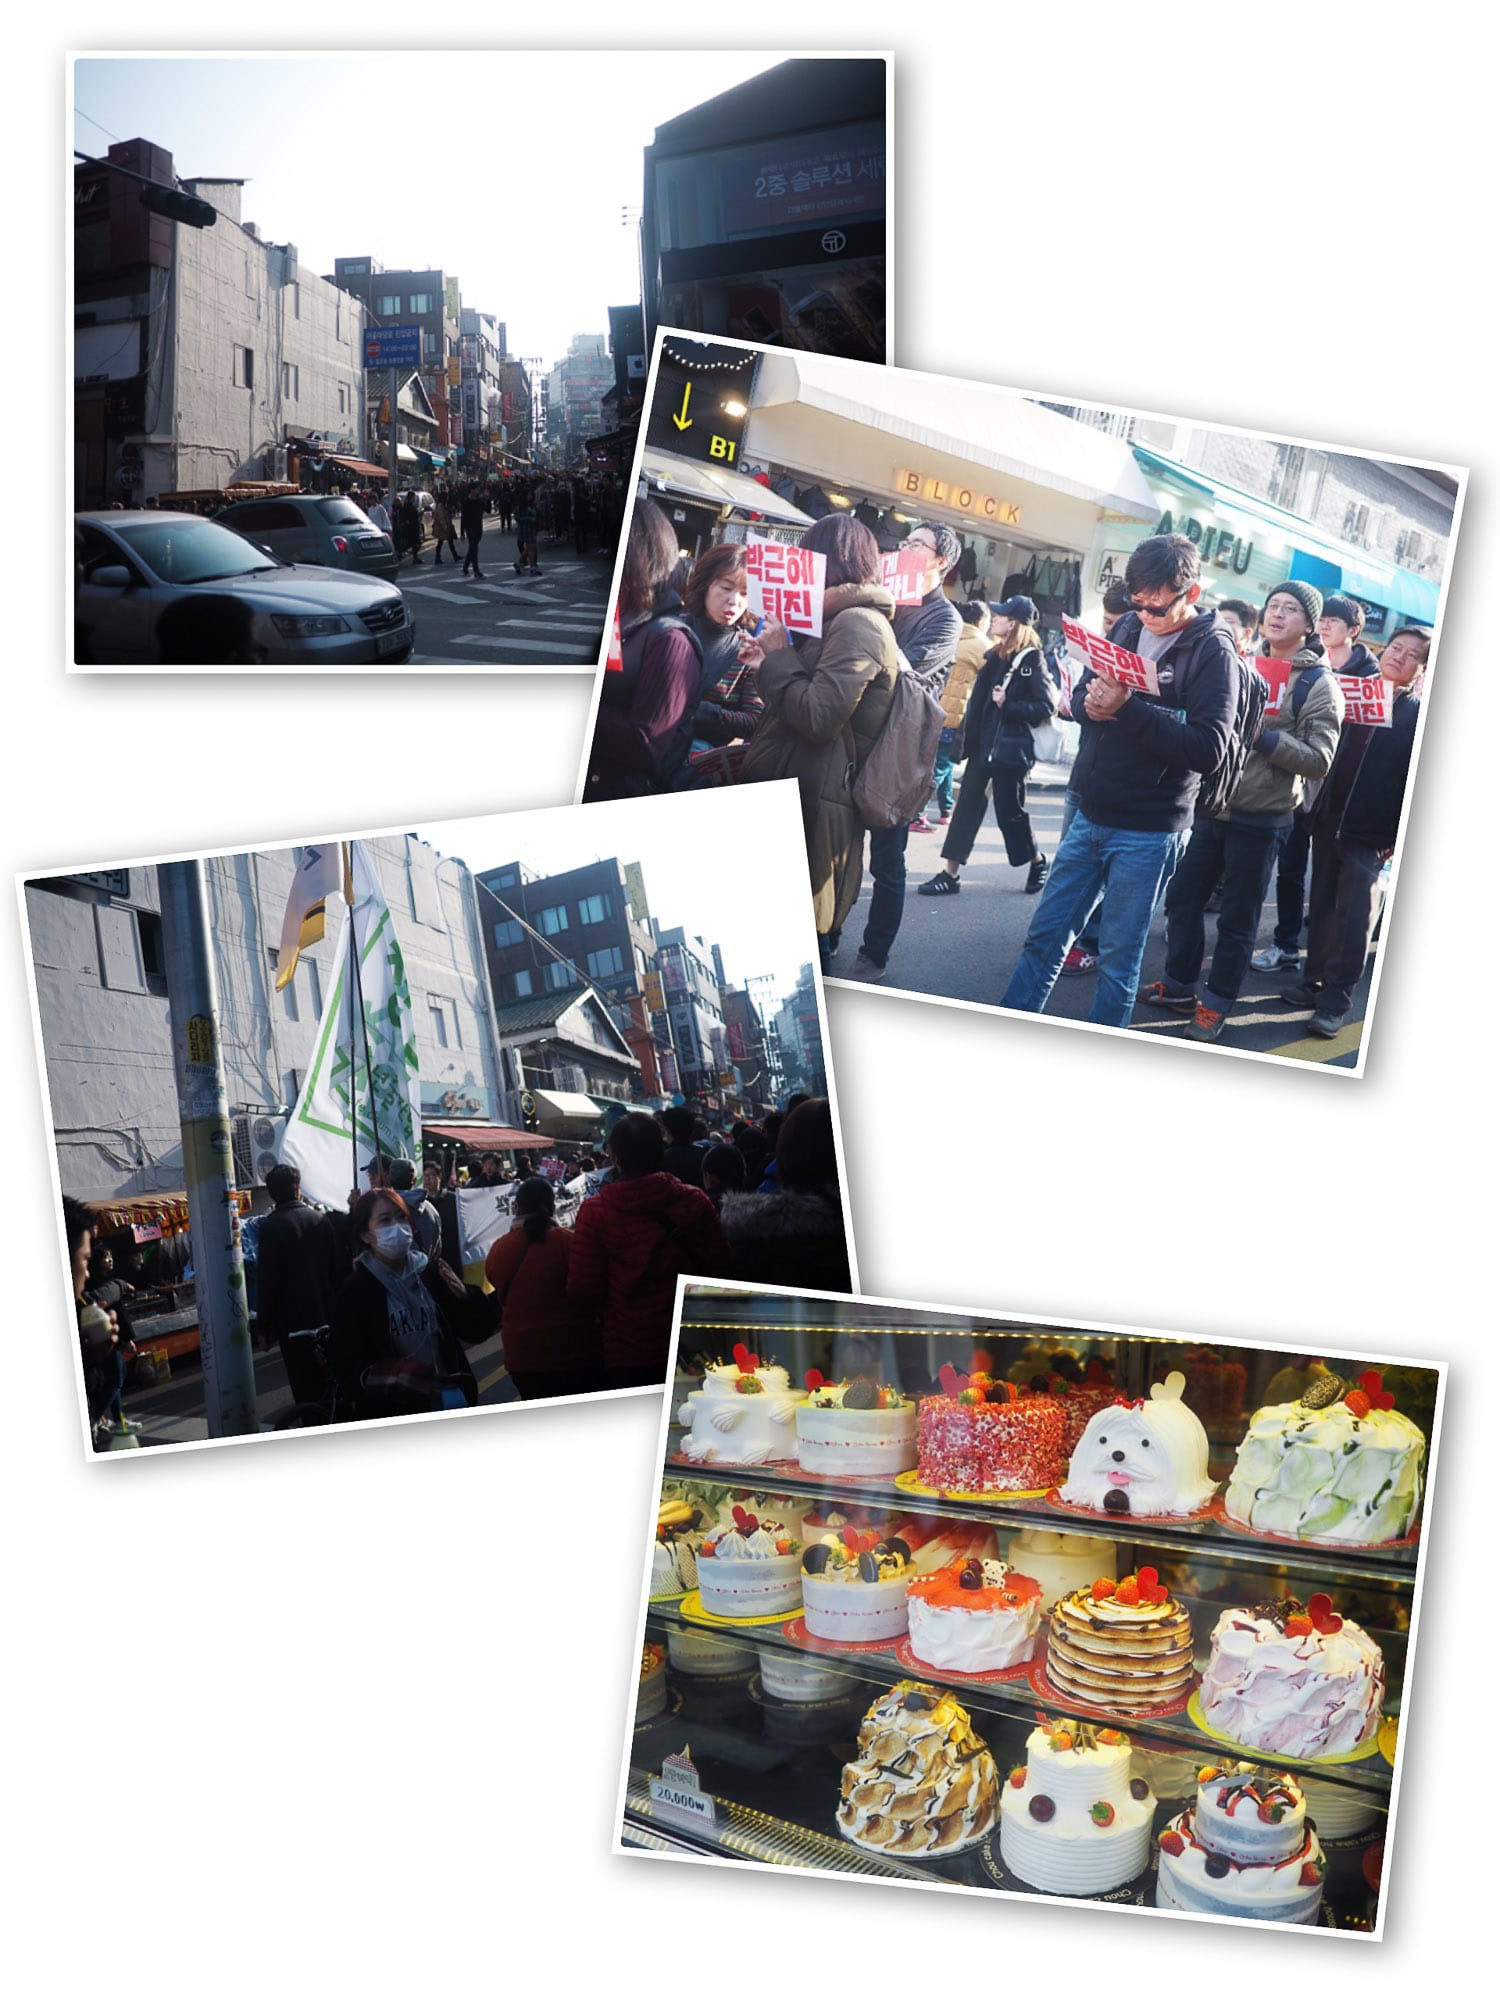 Days 5 & 6: Myeongdong, Cookin' Nanta & DMZ Tour